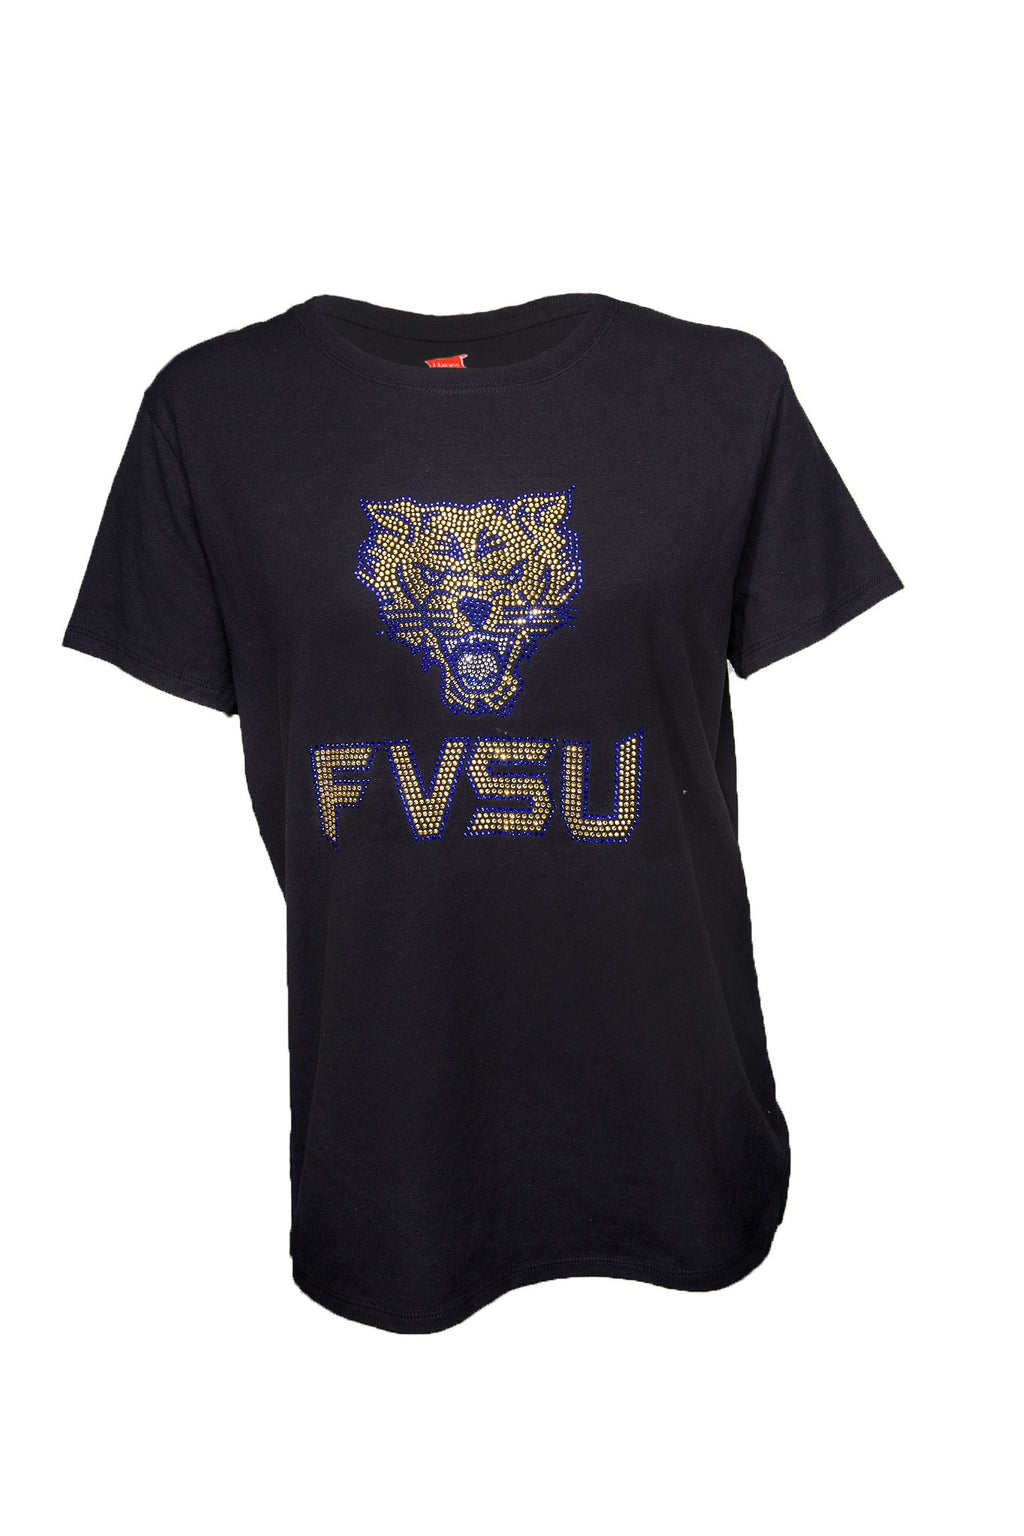 Ft. Valley State Zeta Phi Beta Bling Shirt